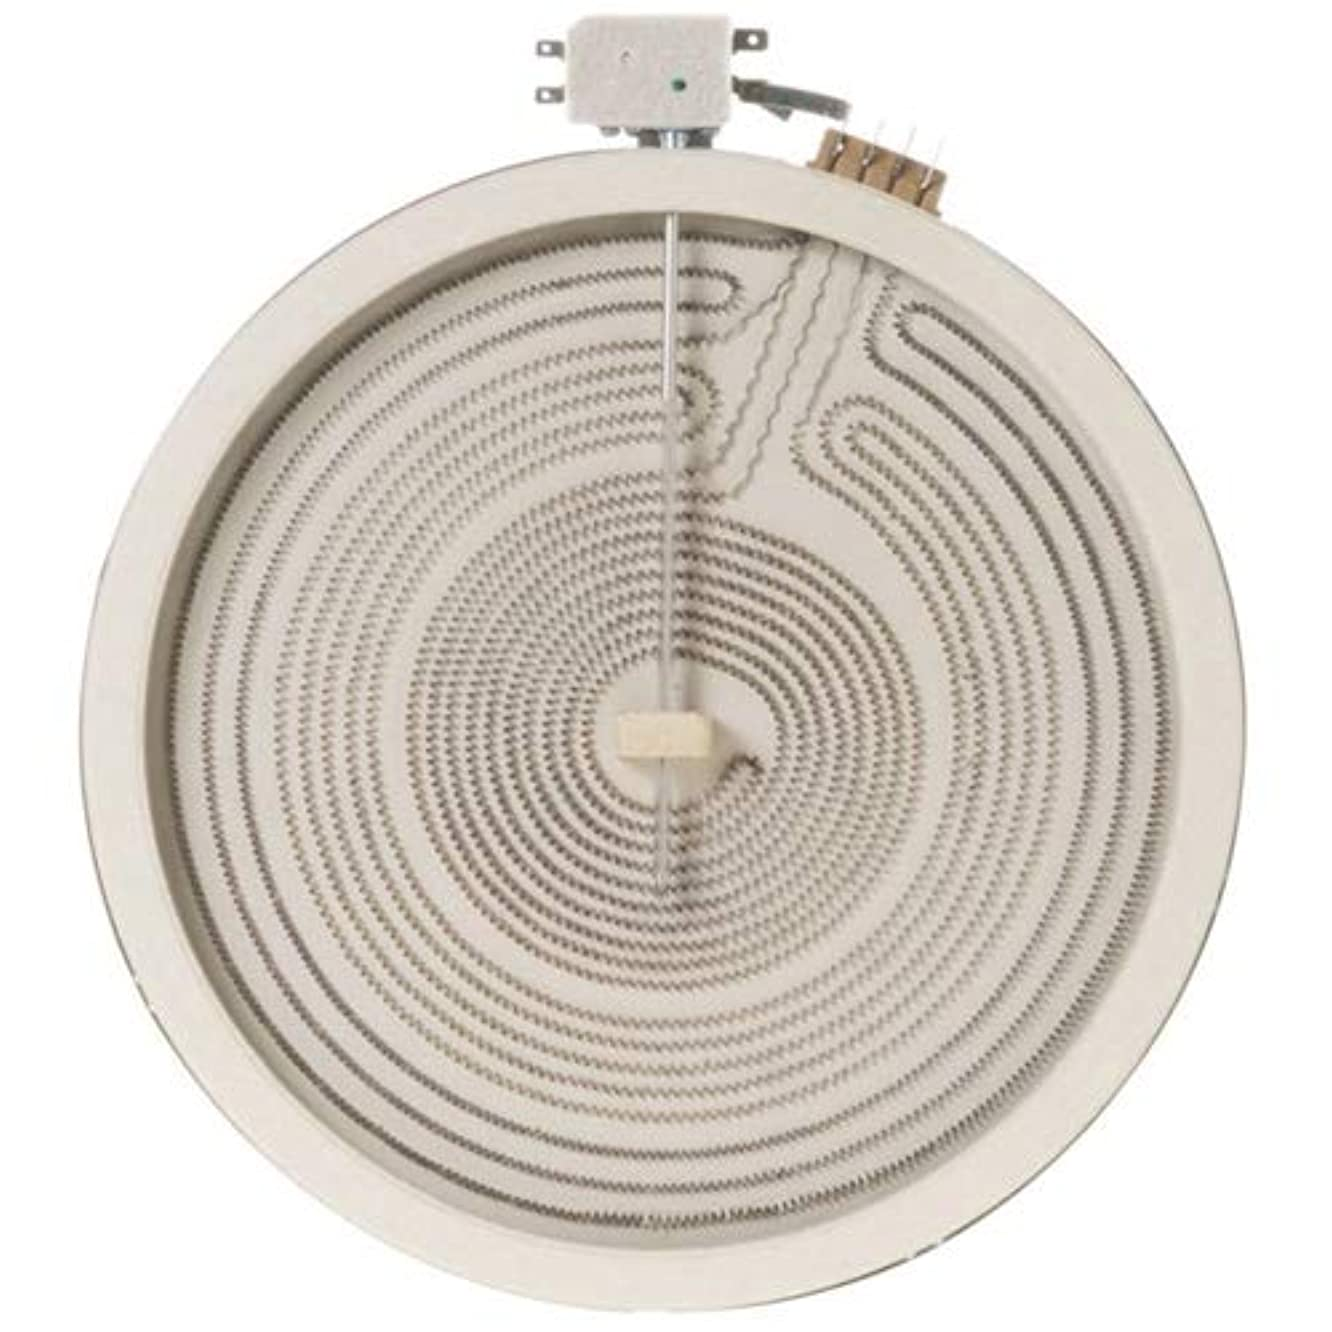 PS2321560 - Aftermarket Upgraded Replacement for General Electric Radiant Heating Element